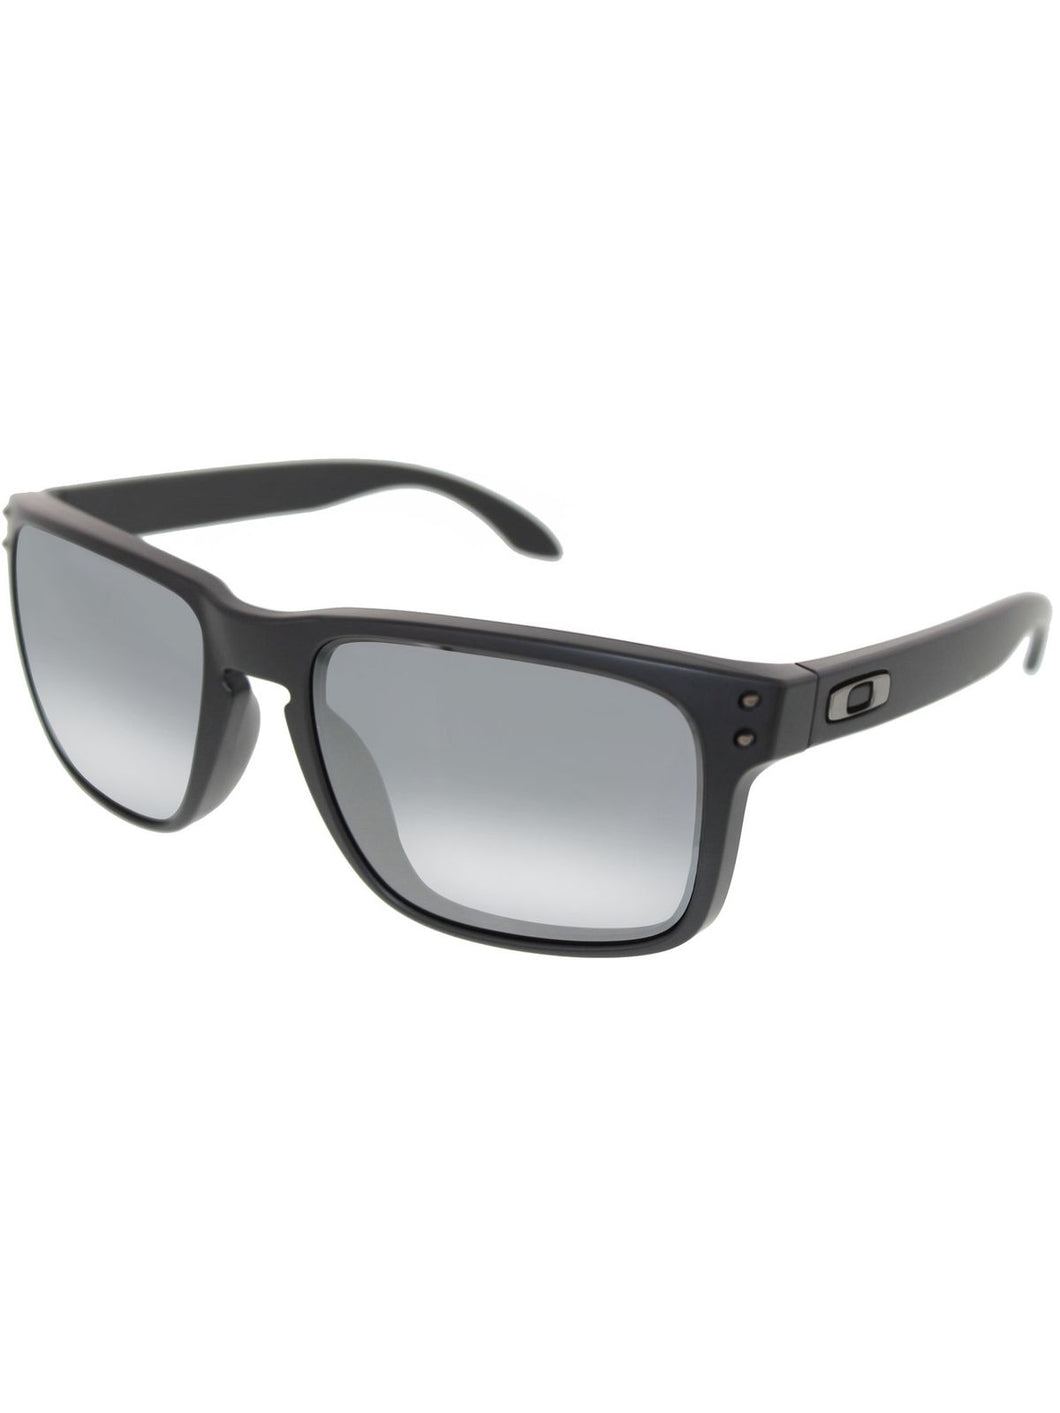 Oakley Sunglasses Unisex OO9102-63 Holbrook/ Black Iridium - Watchbatteries